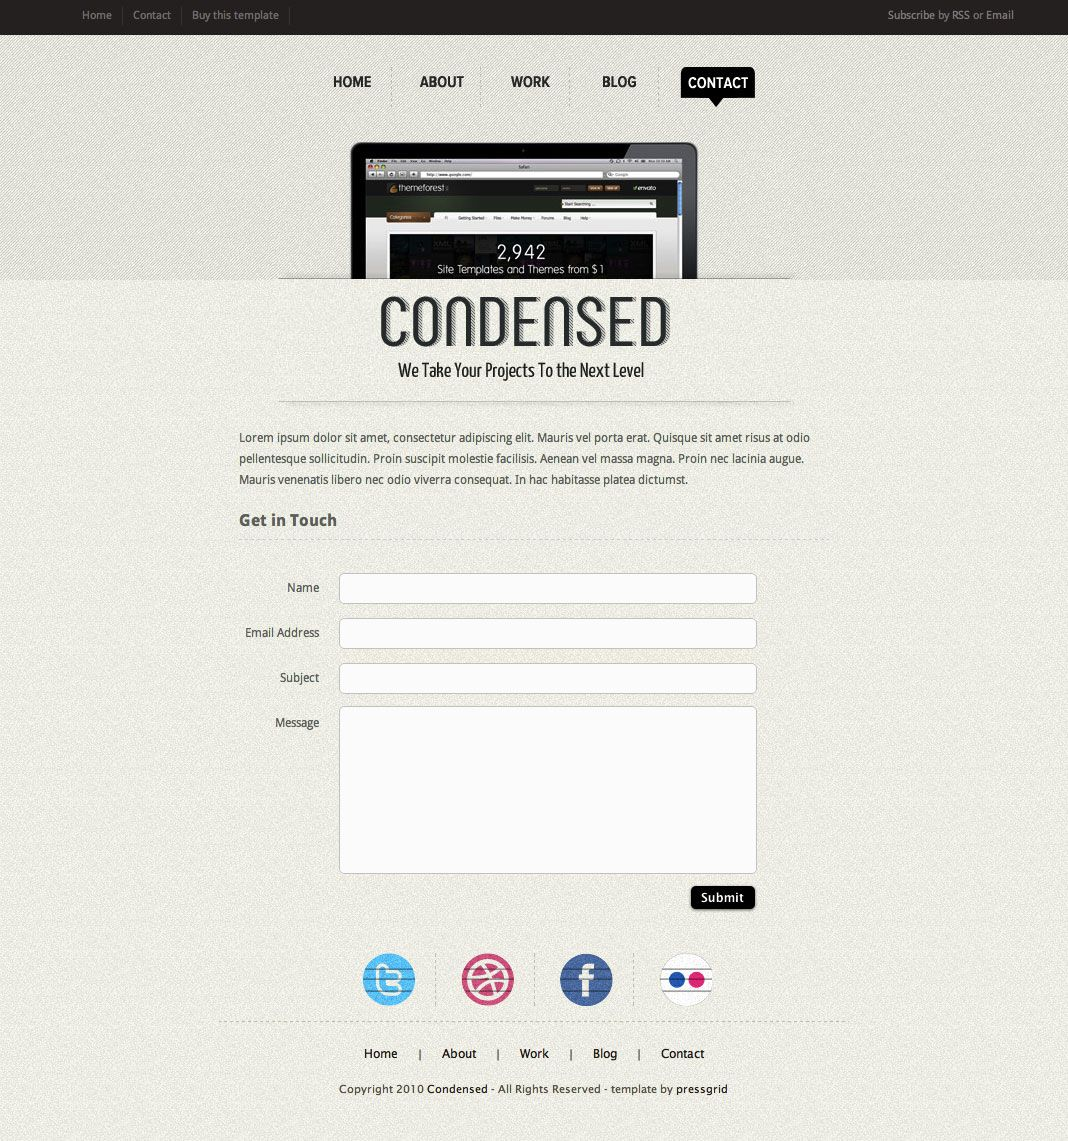 HTML Template #Condensed, #HTML, #Template